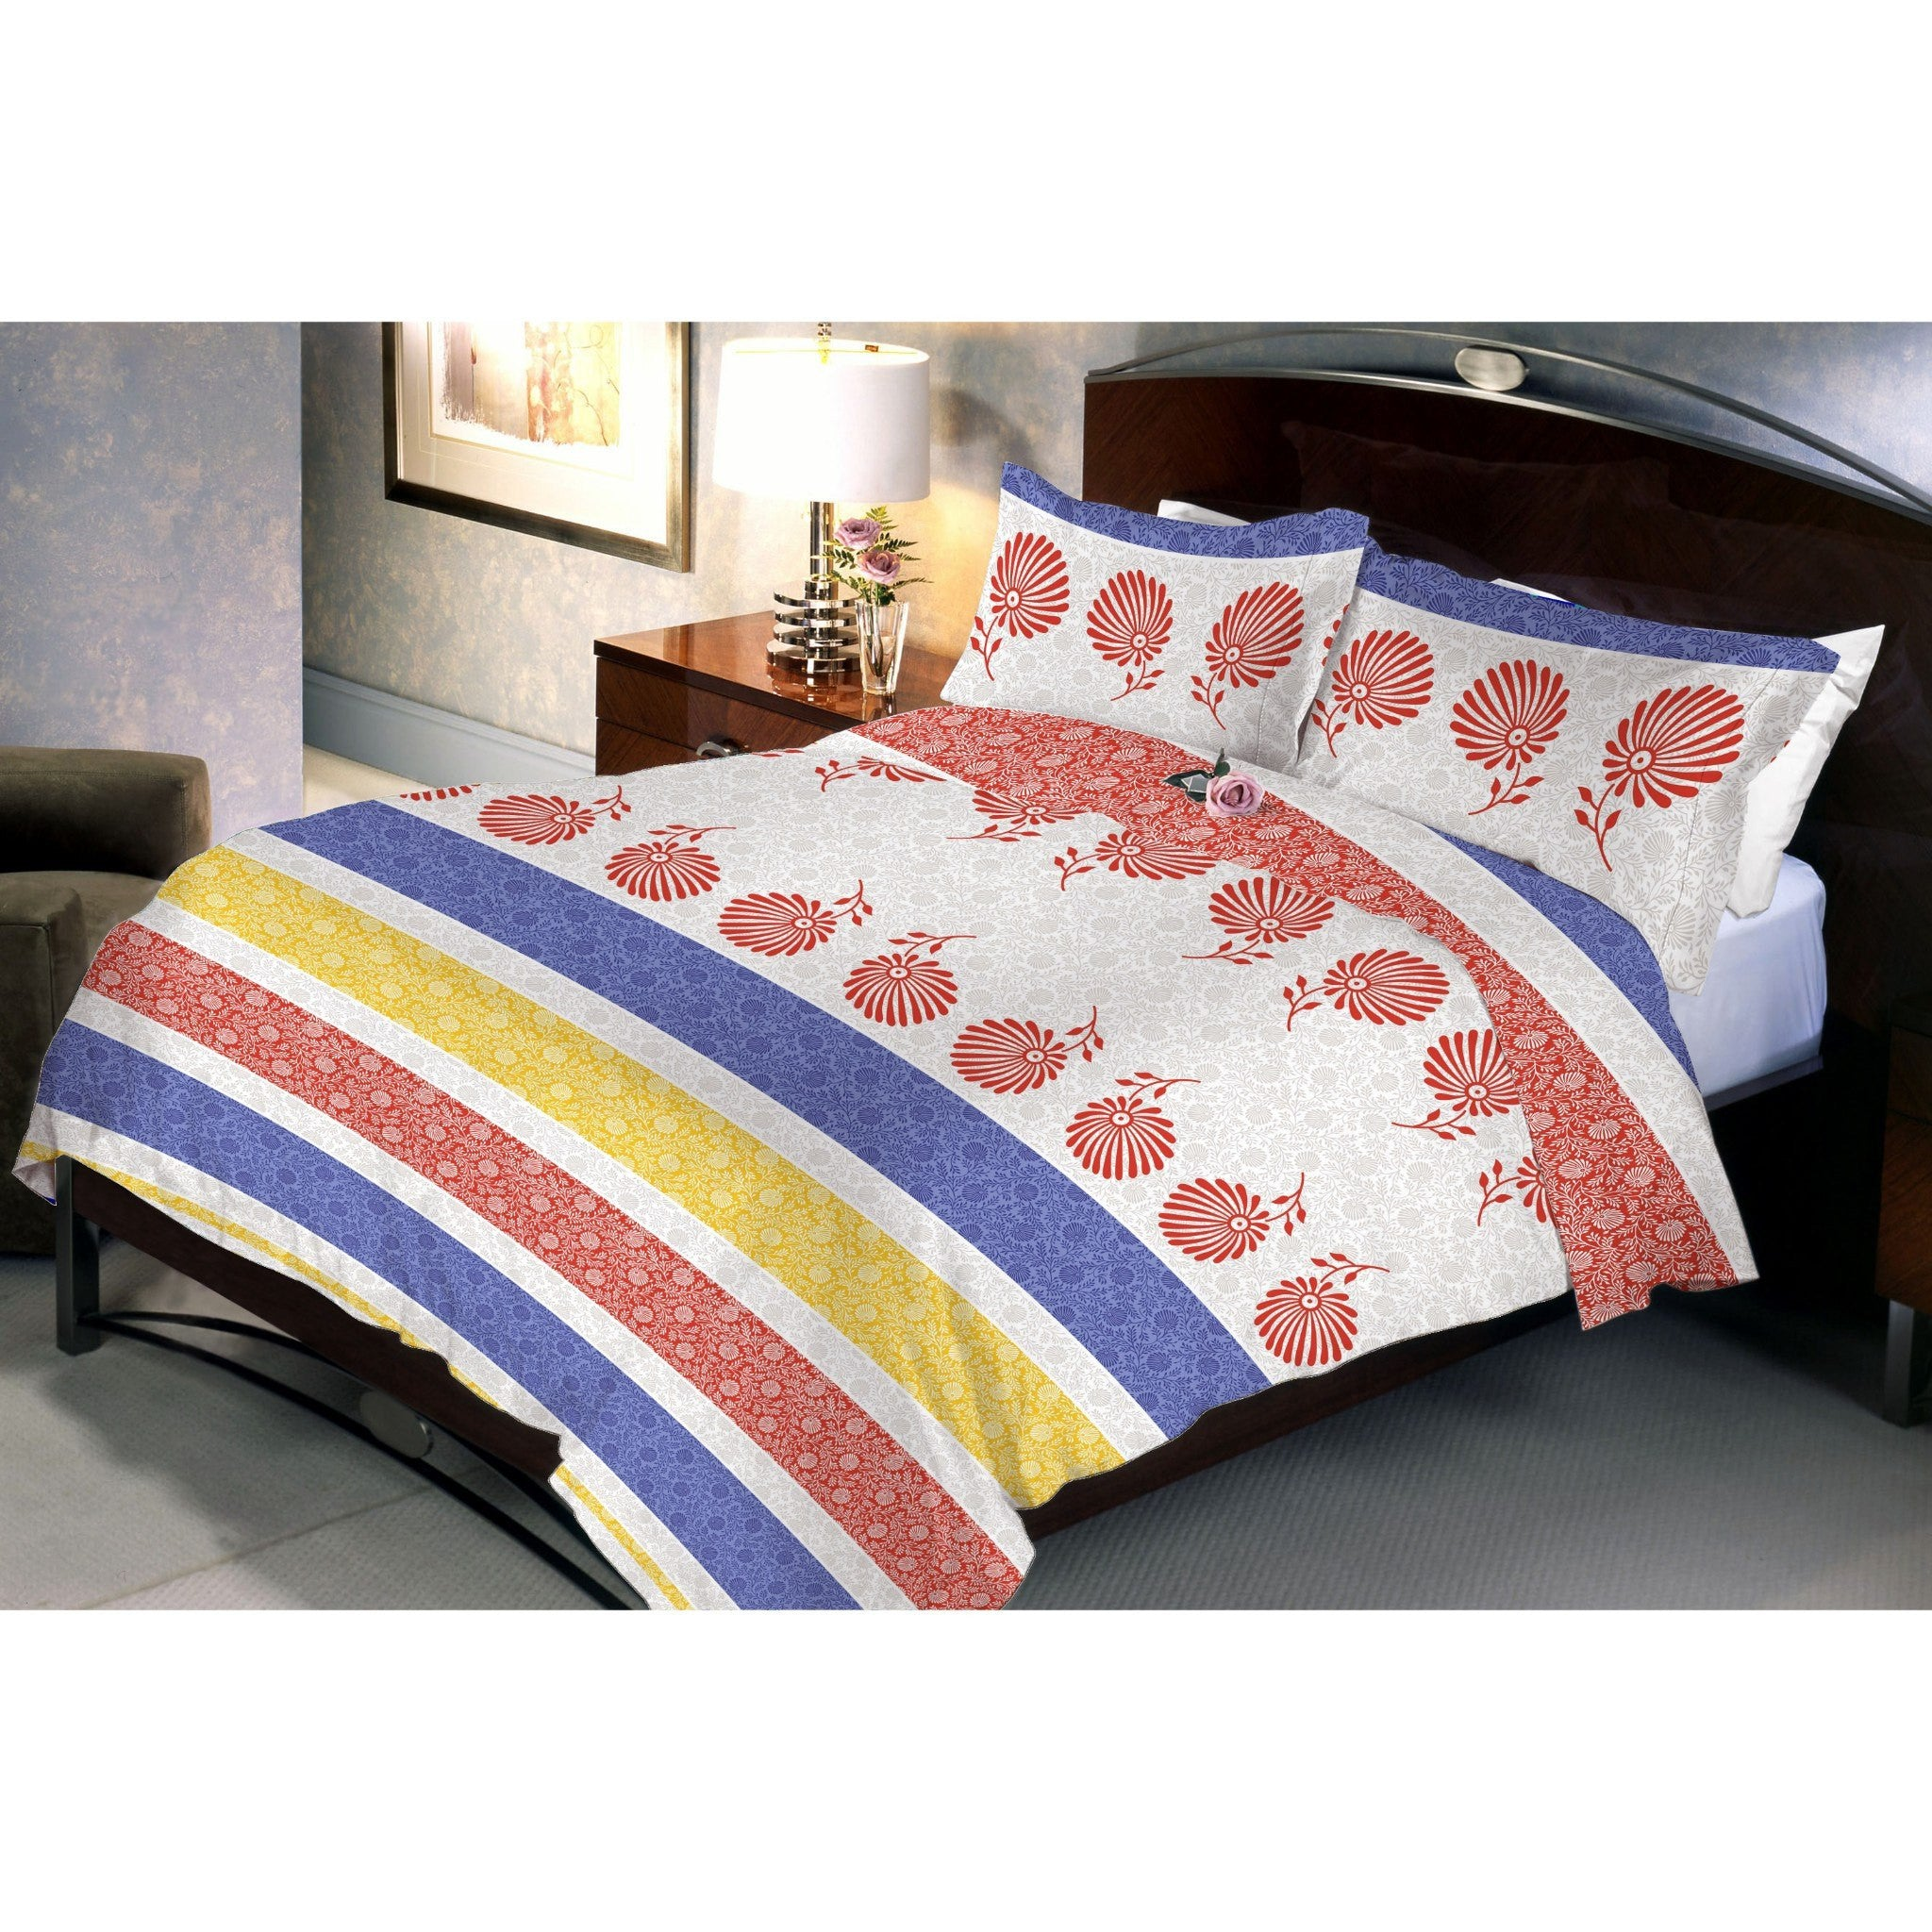 Triple stripped bed sheet and pillow covers